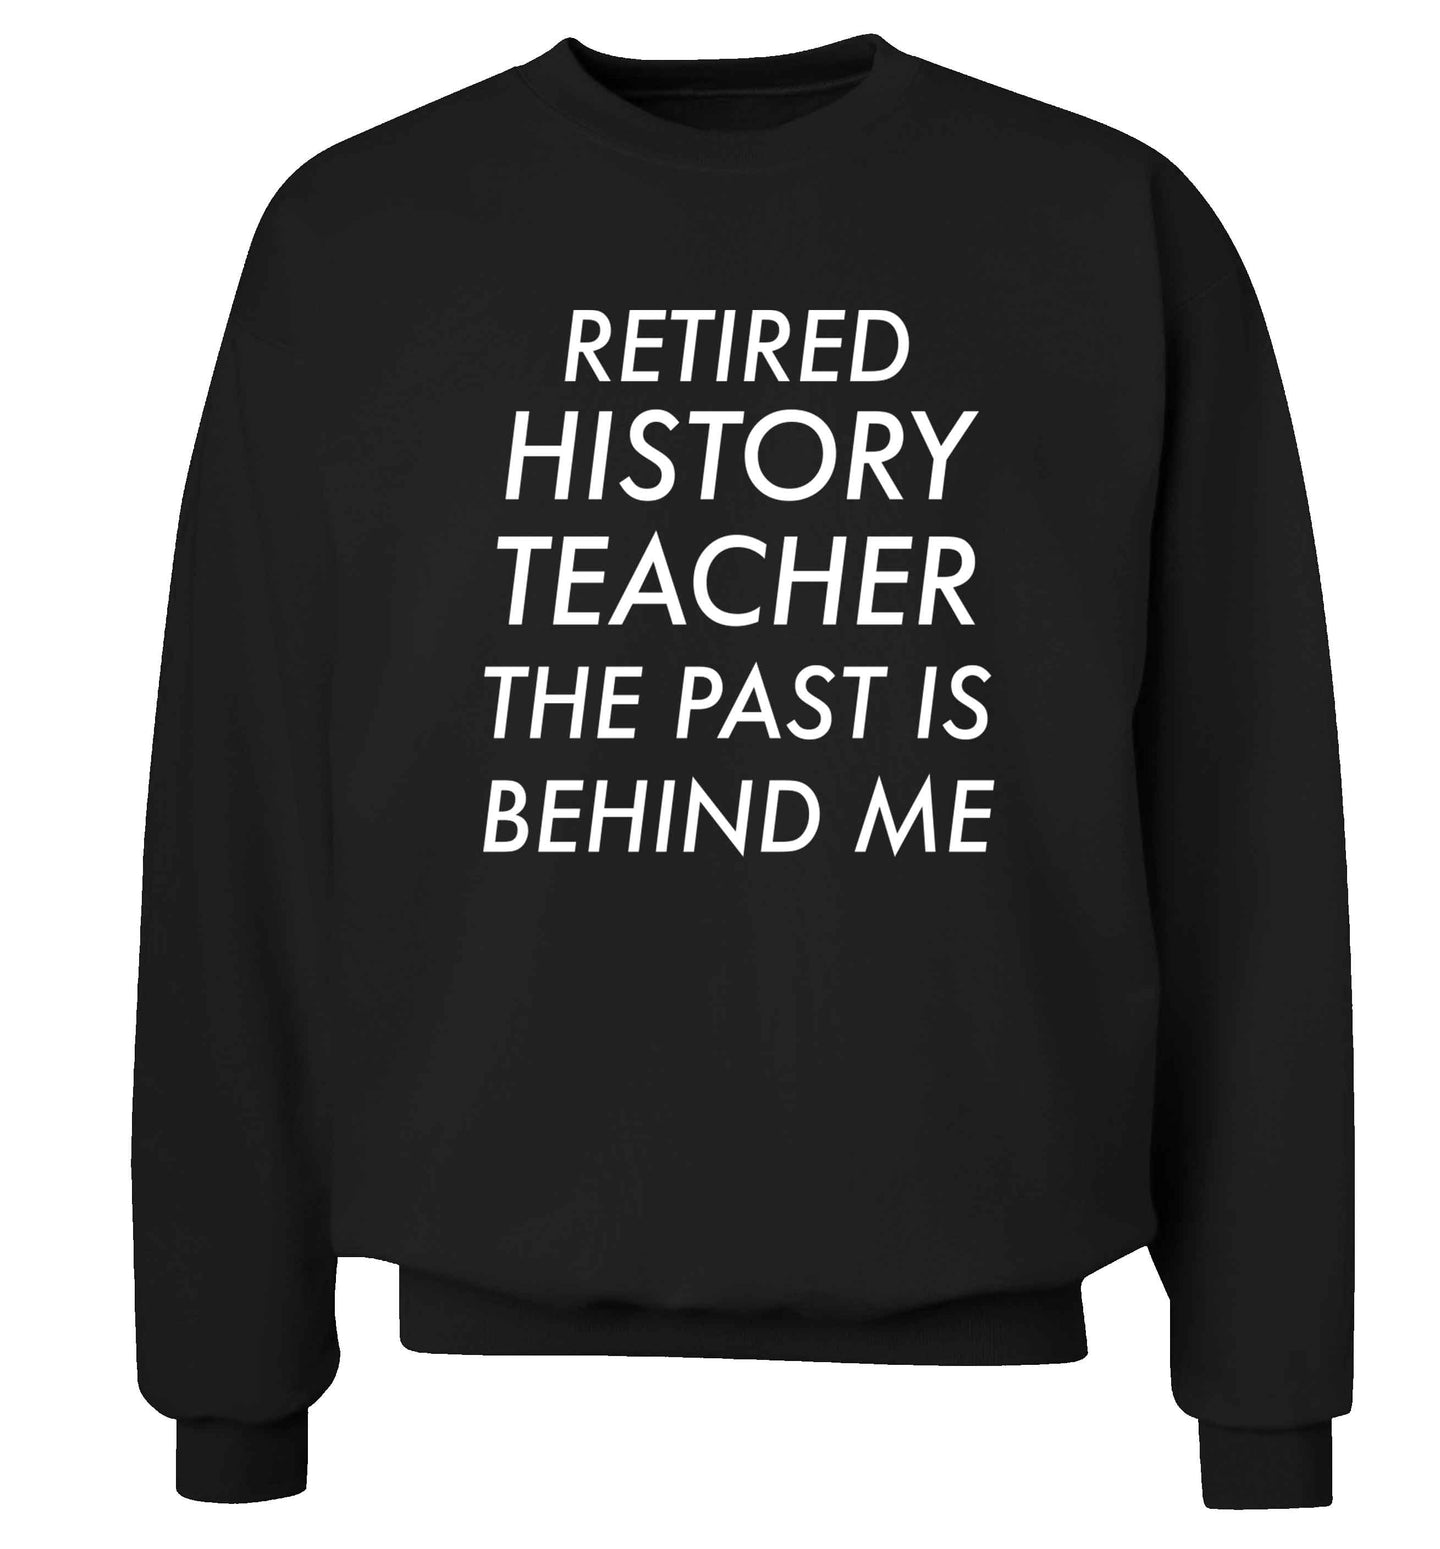 Retired history teacher the past is behind me Adult's unisex black Sweater 2XL